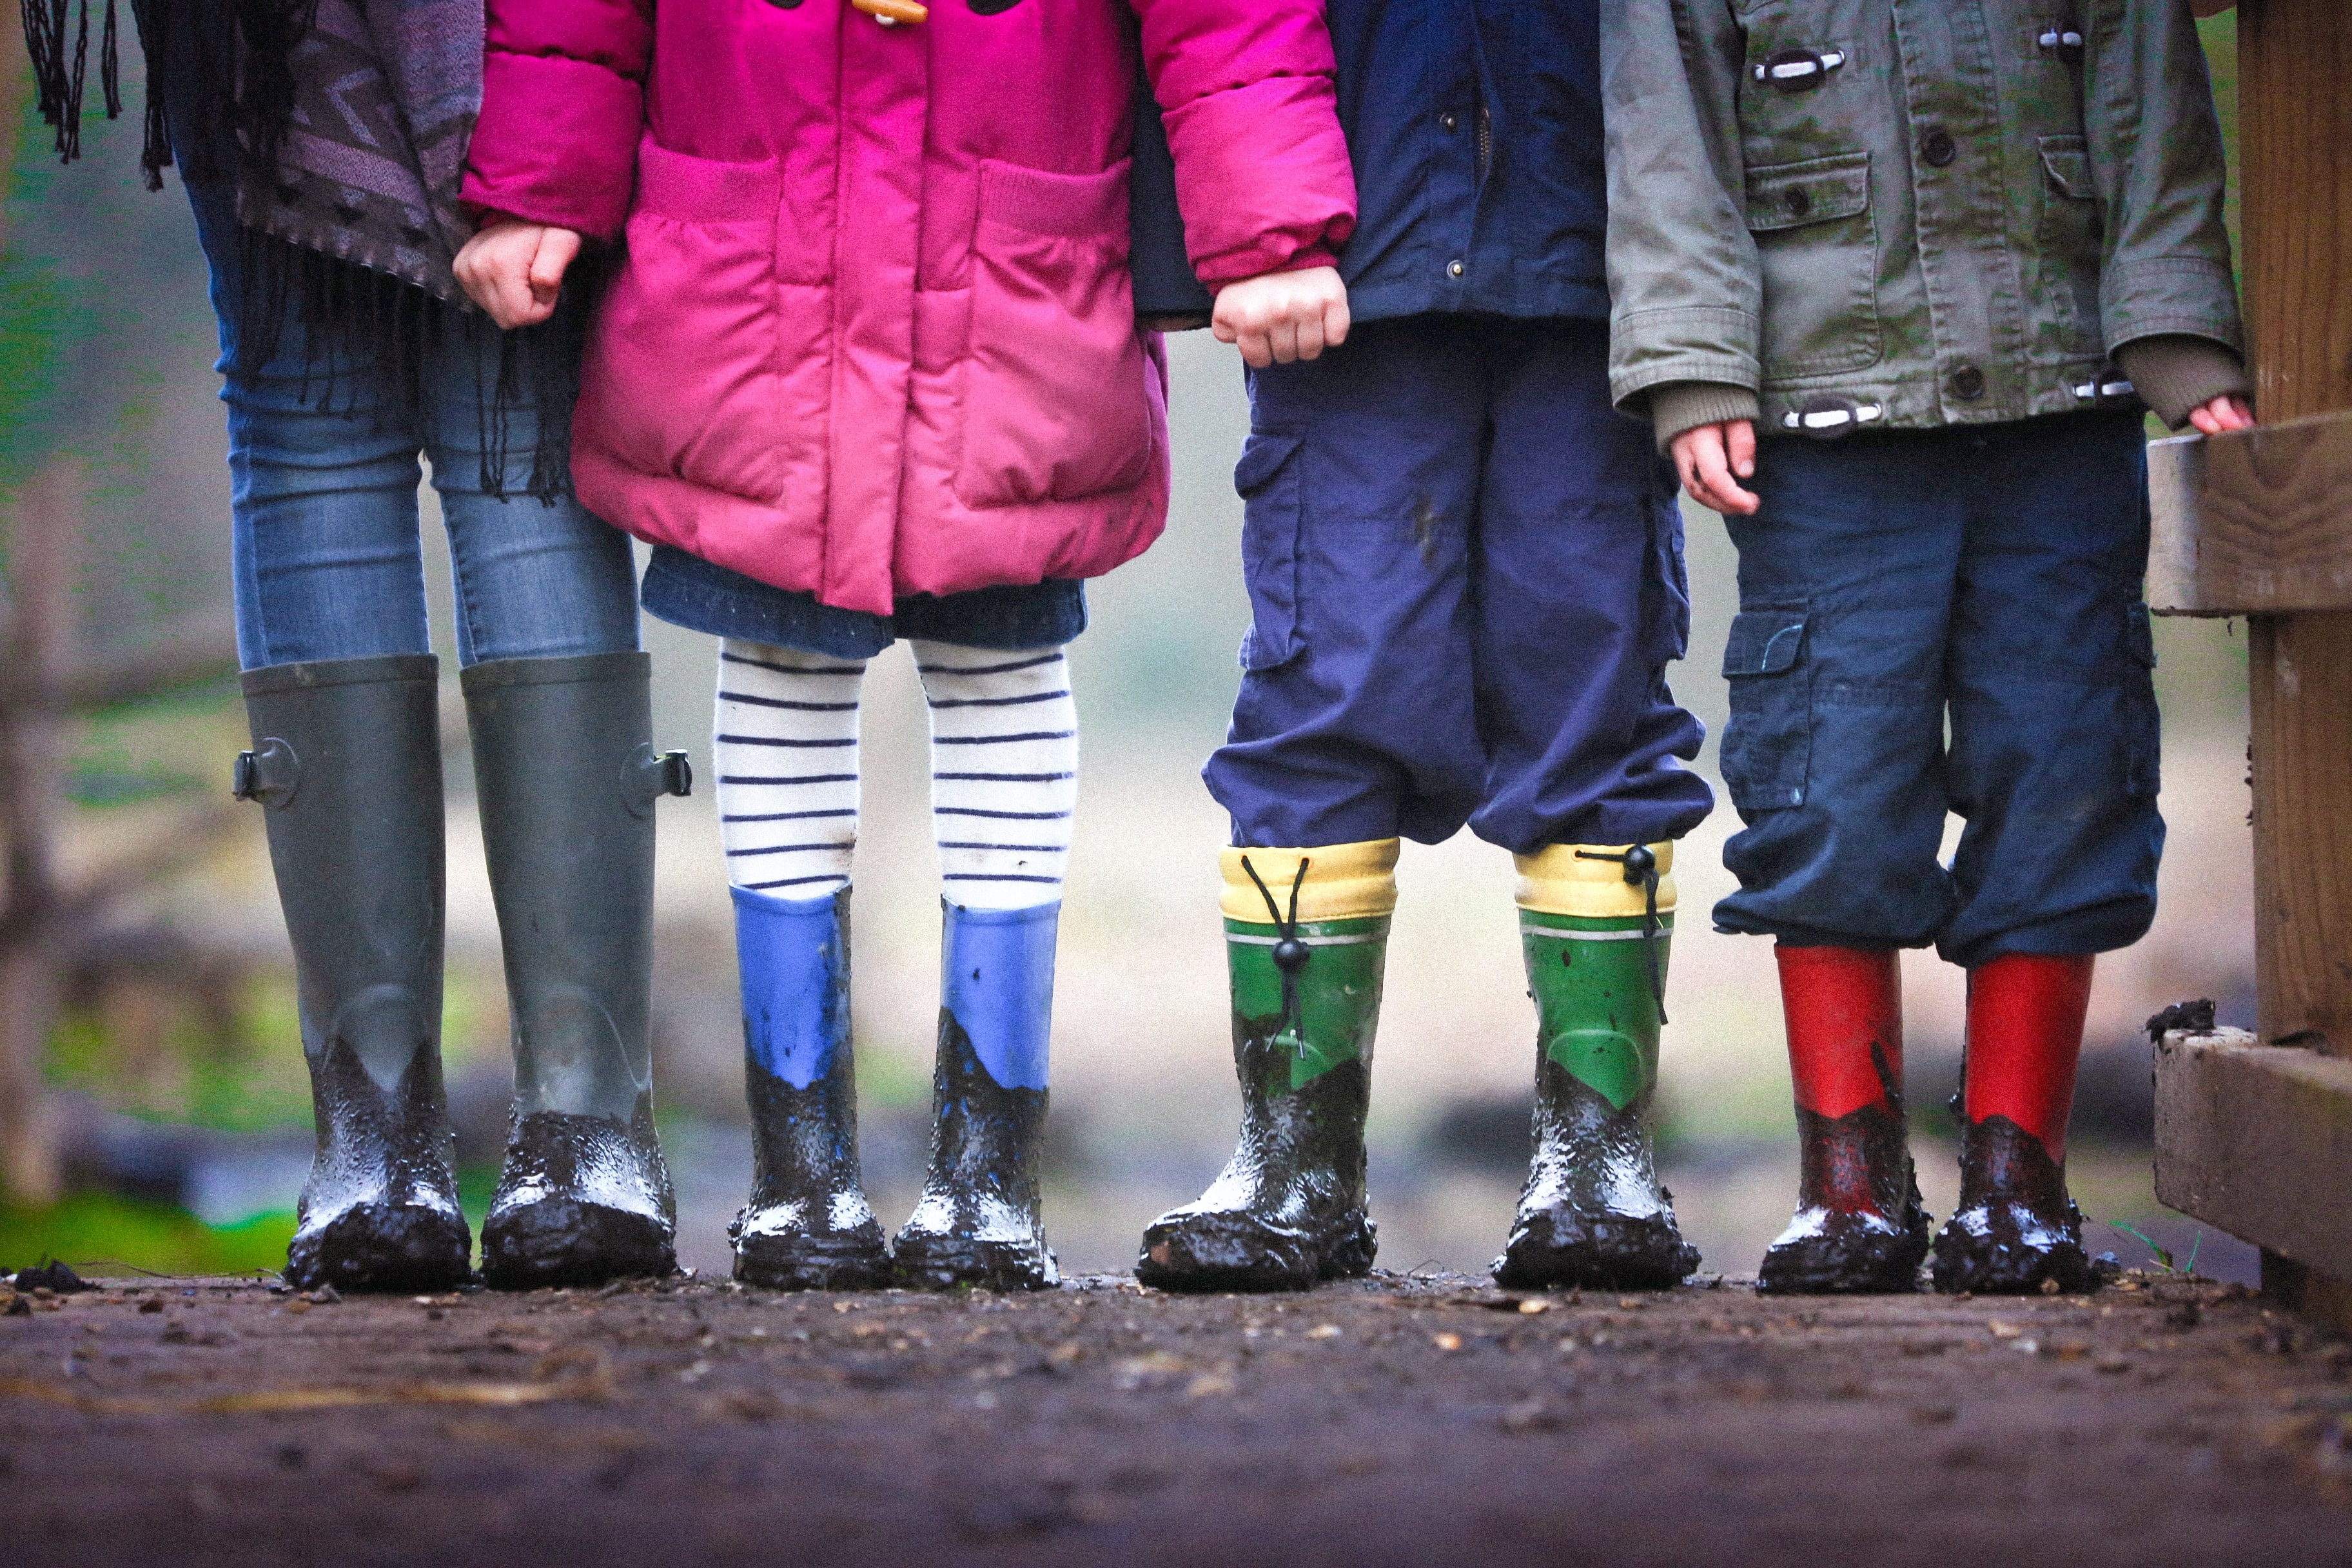 Child protection for Employees - Mandatory reporting